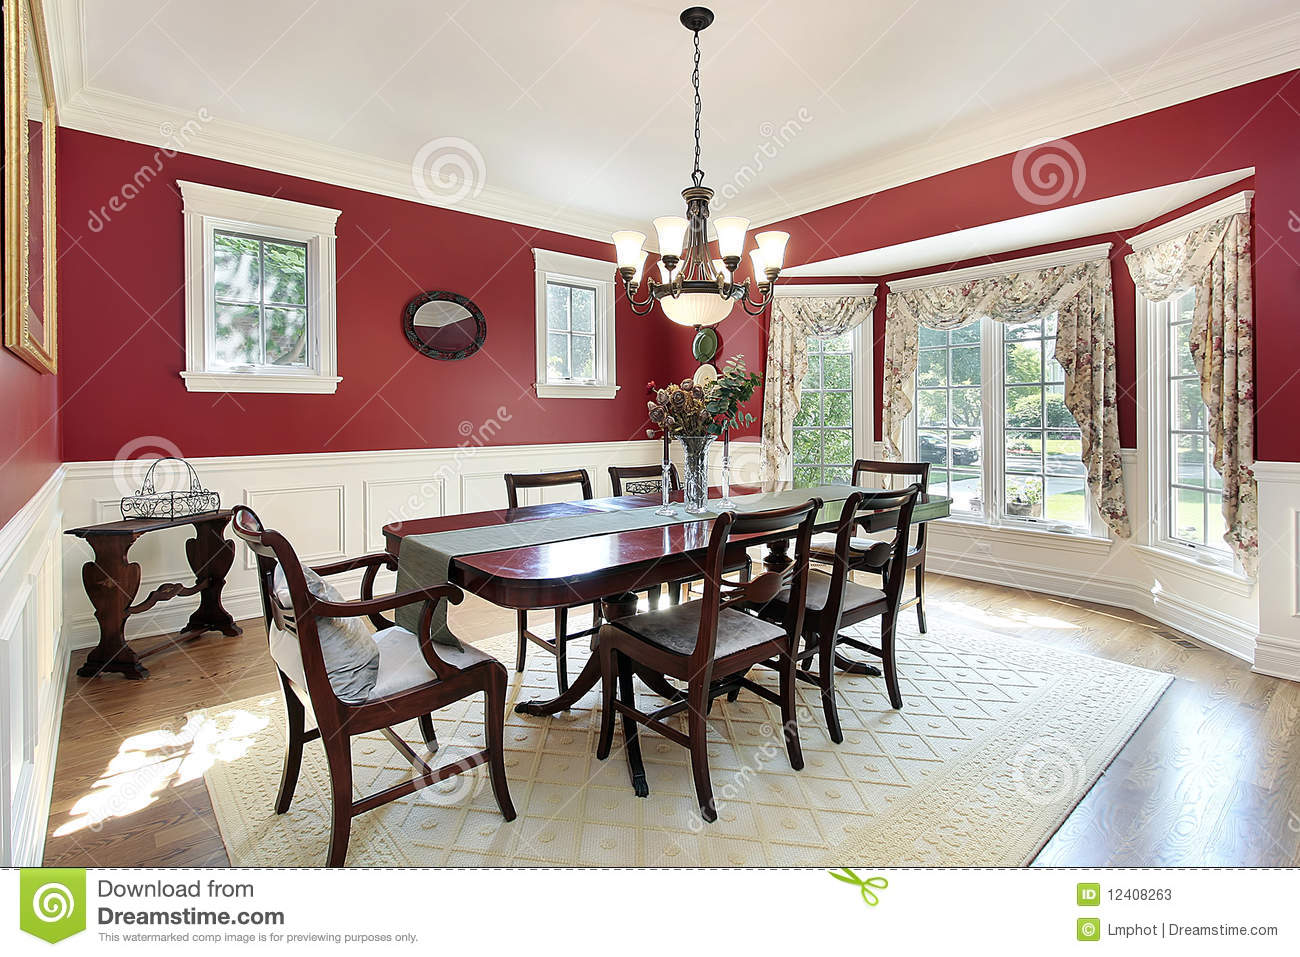 Dining Room With Red Walls Stock Photos Image 12408263